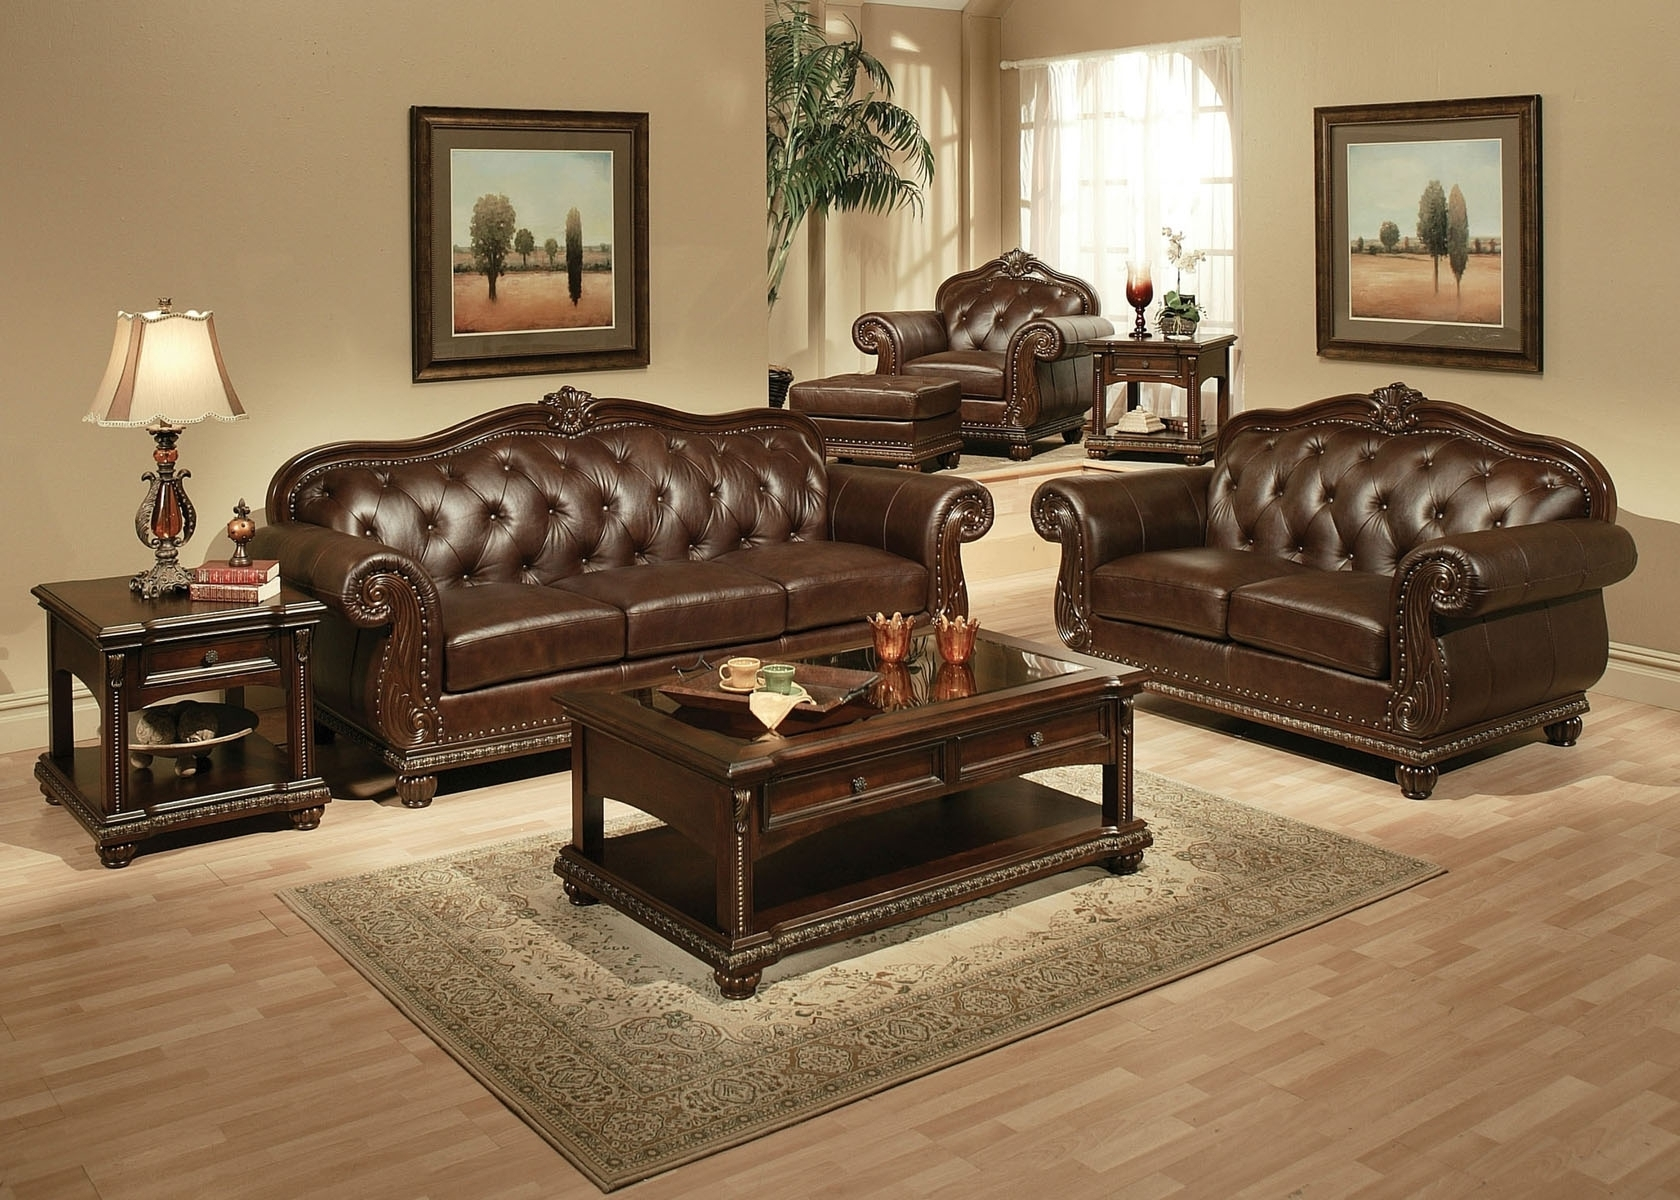 Elegant Sofas And Chairs Throughout 2018 Living Room: Amazing Living Room Ideas Foamy Chairs Spacious (View 7 of 15)